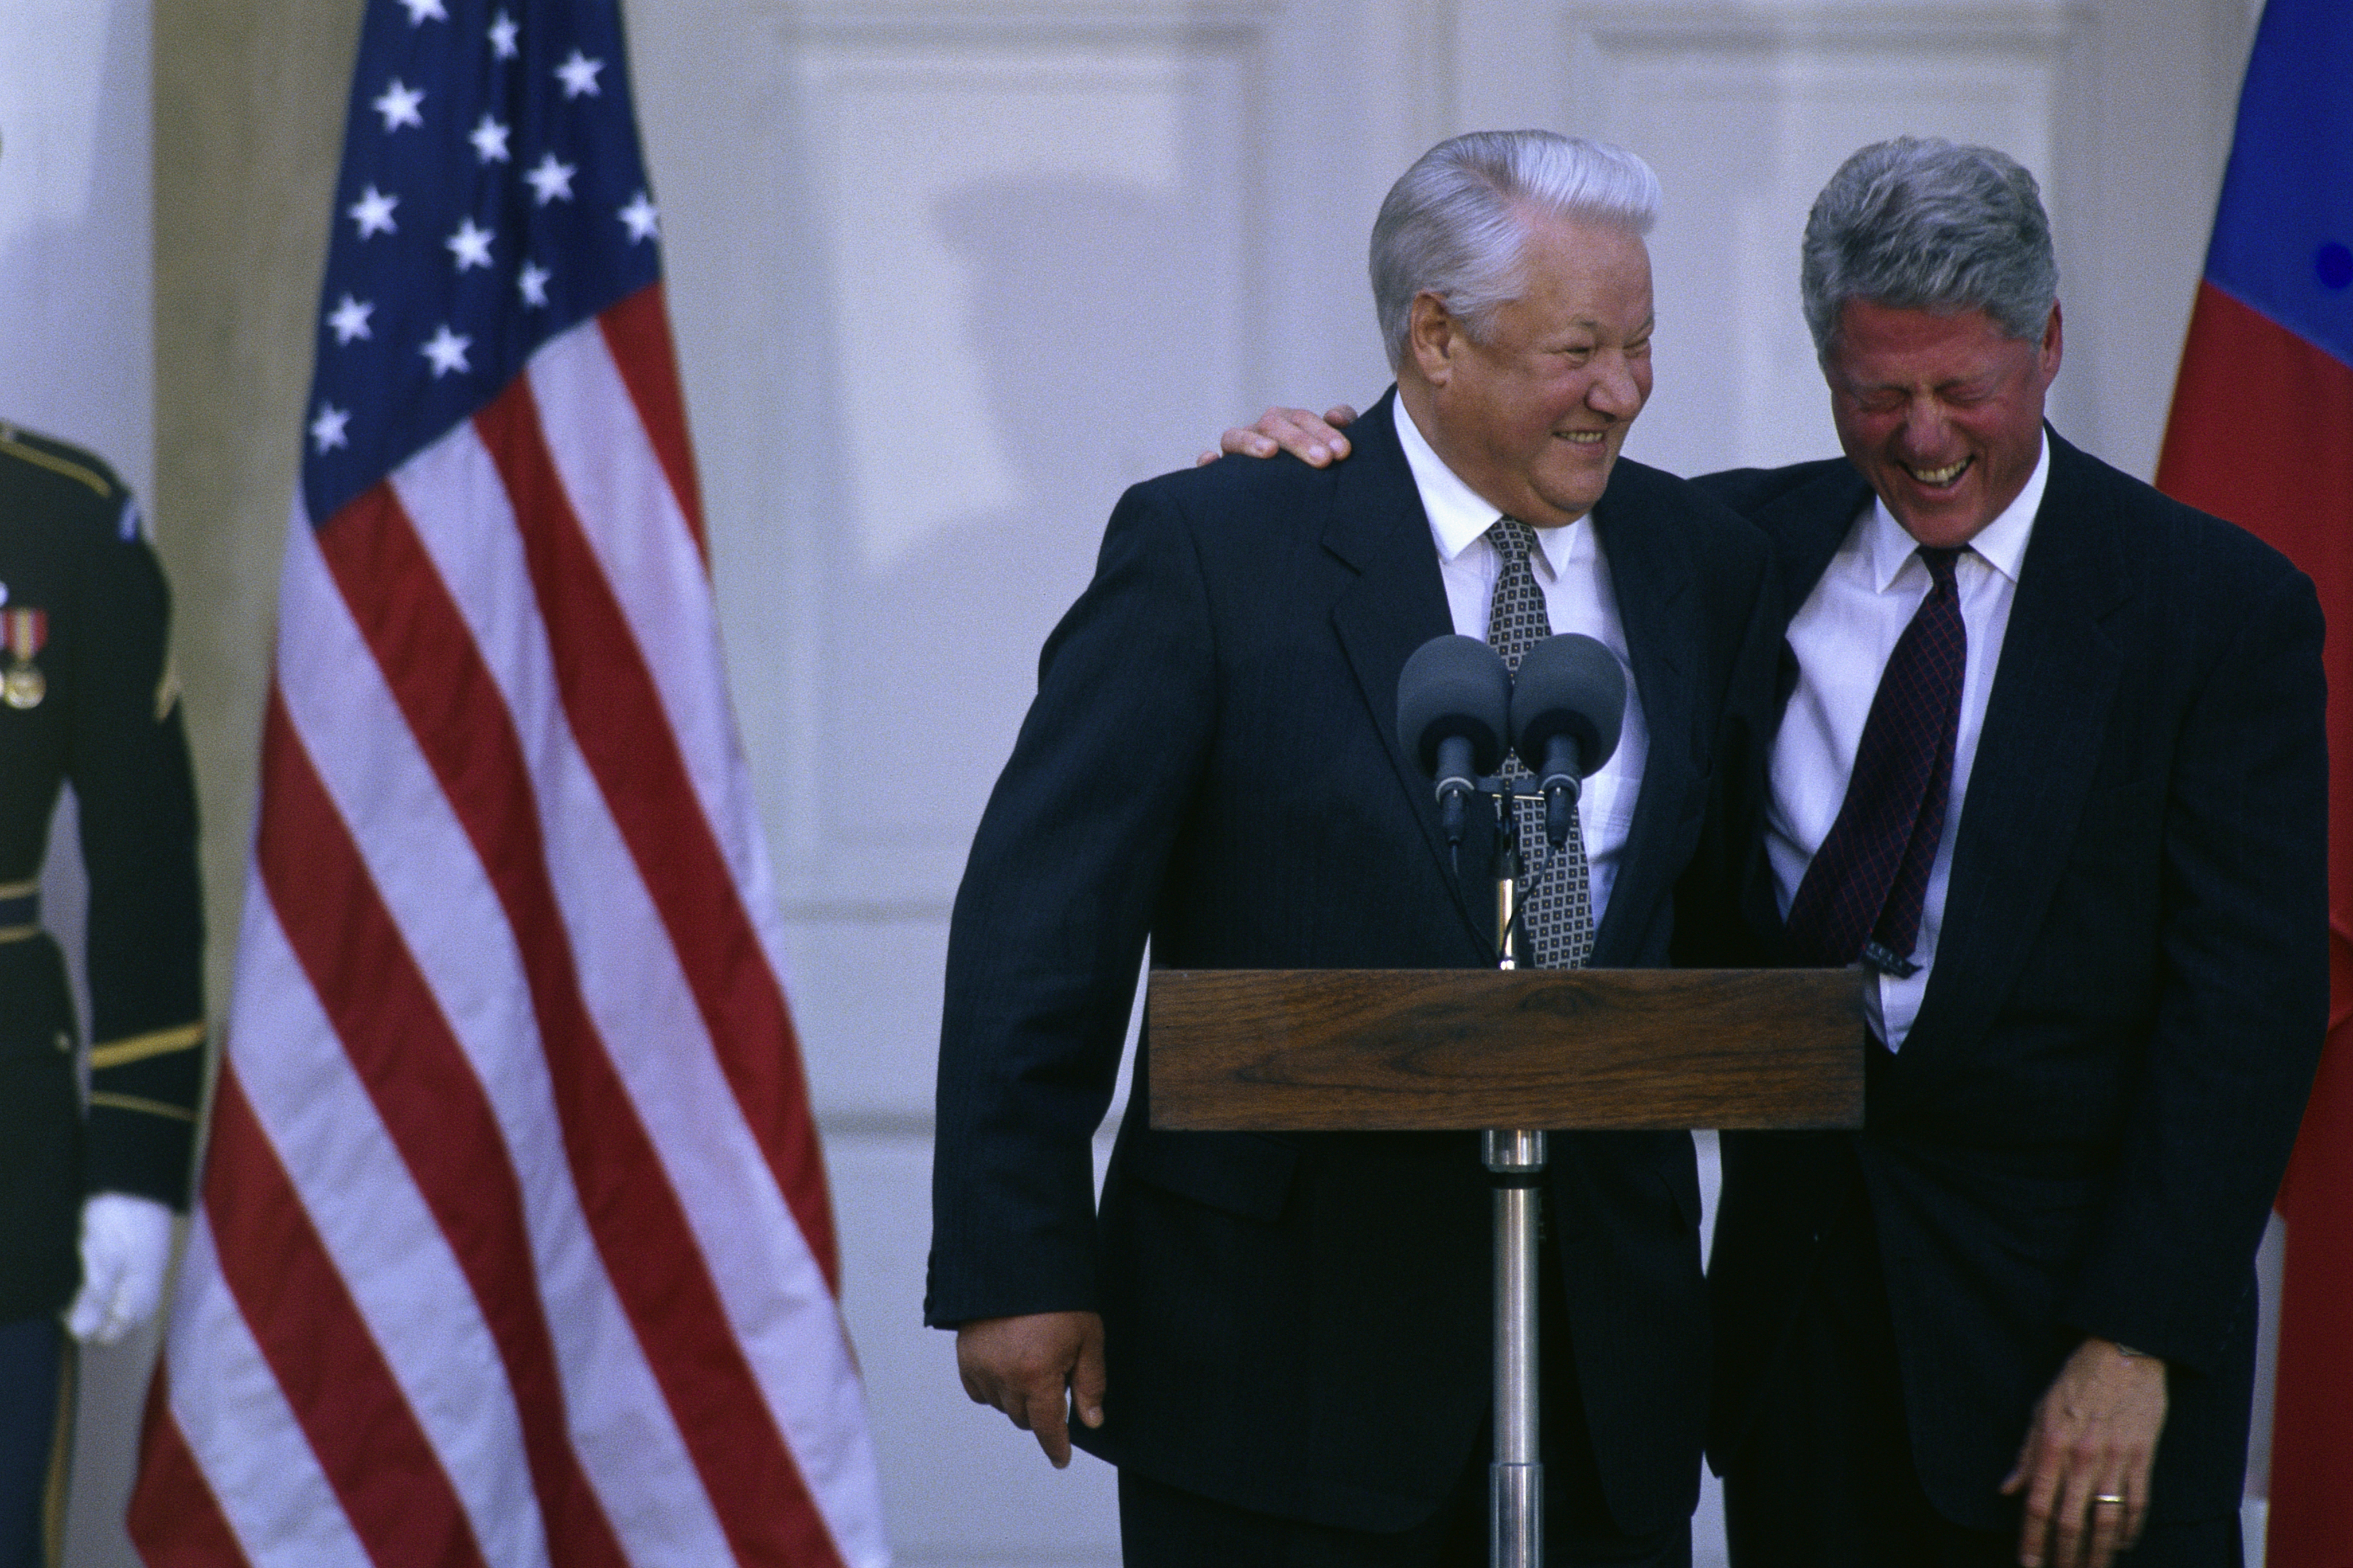 American President Bill Clinton laughs at Boris Yeltsin's jokes during a joint news conference in Hyde Park, New York. Putin was determined to regain international respect he felt Yeltsin had lost. (Credit: Wally McNamee/Corbis/Getty Images)